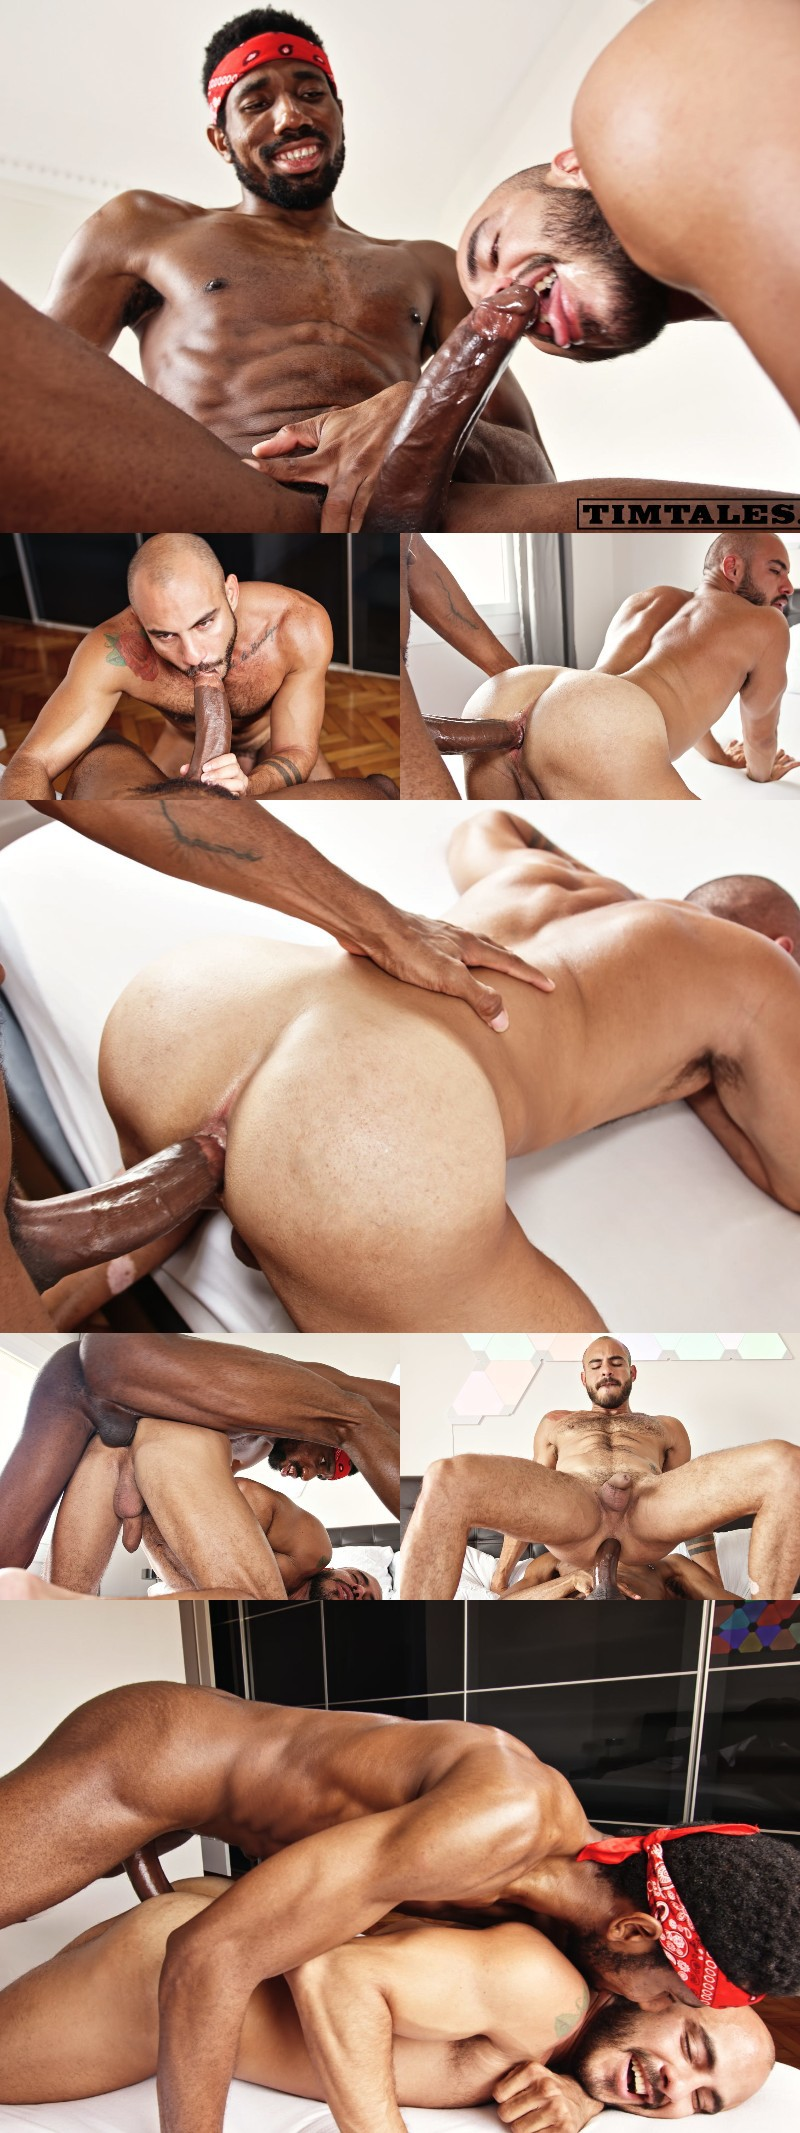 Nigerian Top Sly Buries His 10 Inches in Patrick Dei's Hole